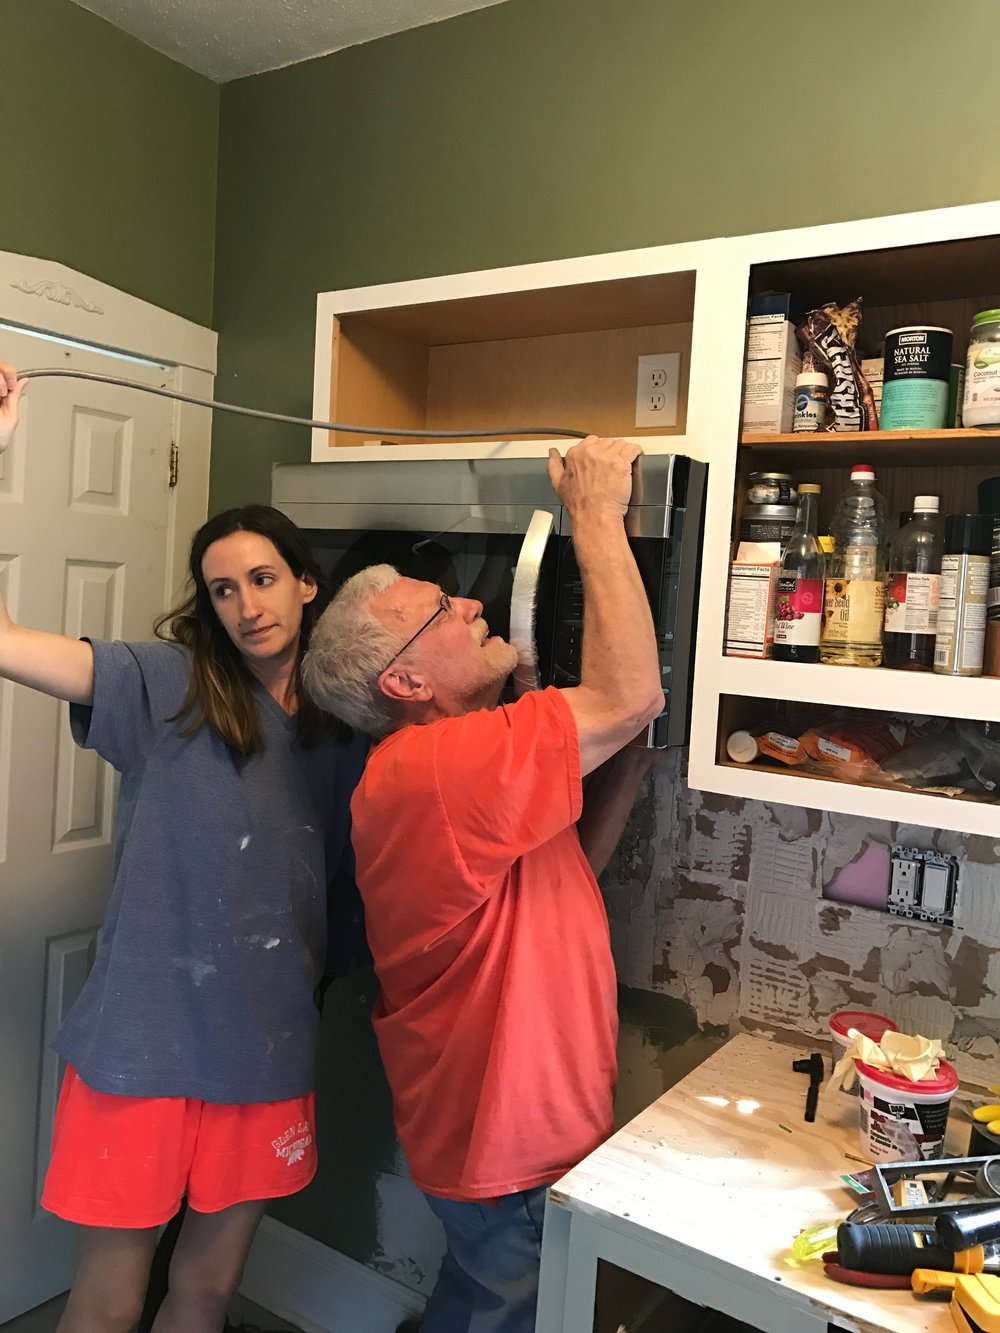 Me helping my dad install this microwave but he is likely doing all the work/lifting